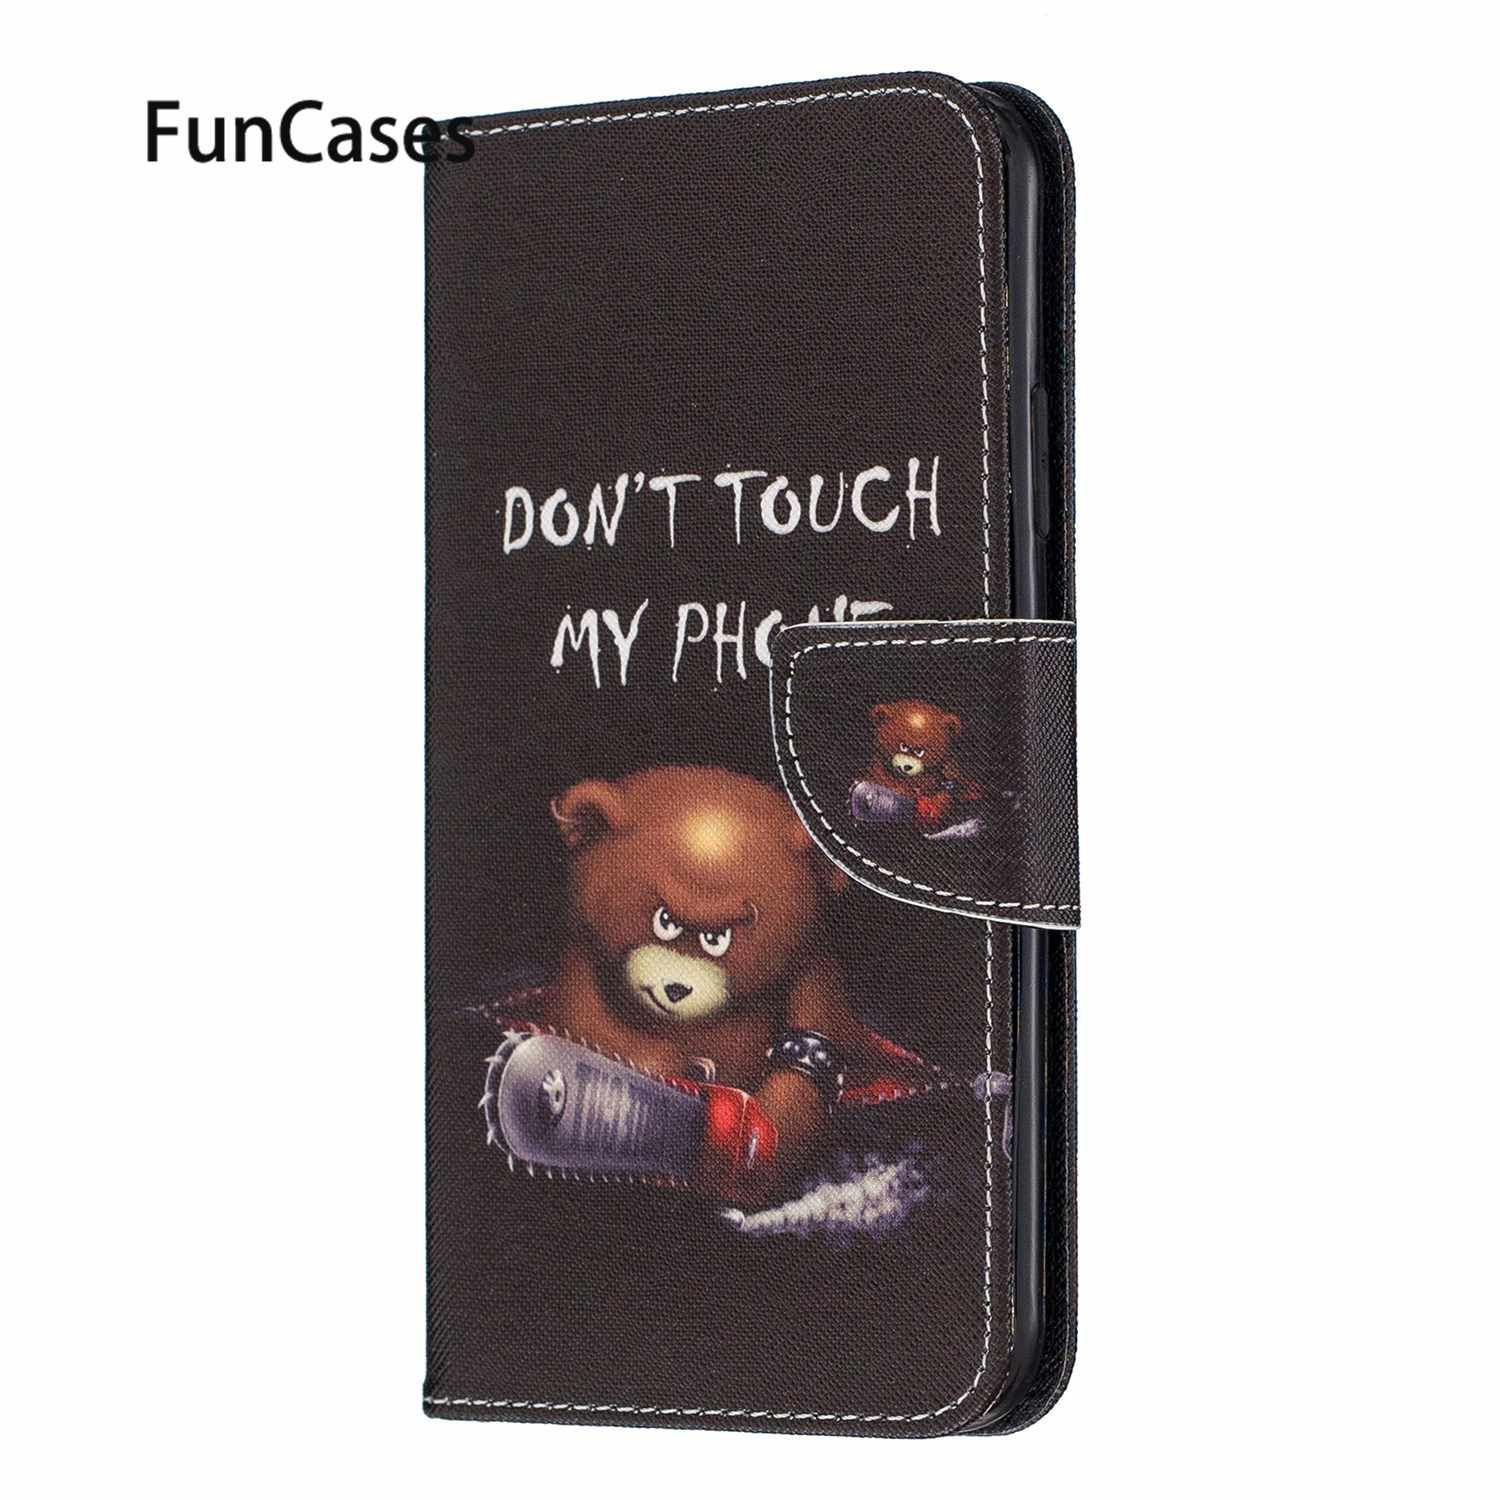 Deer Cell Phones Cases For Samsung A50 PU Leather Book Case sFor Cellular Samsung Galaxy A50S A30S A51 A40 A70 A20 A30 A71 A10